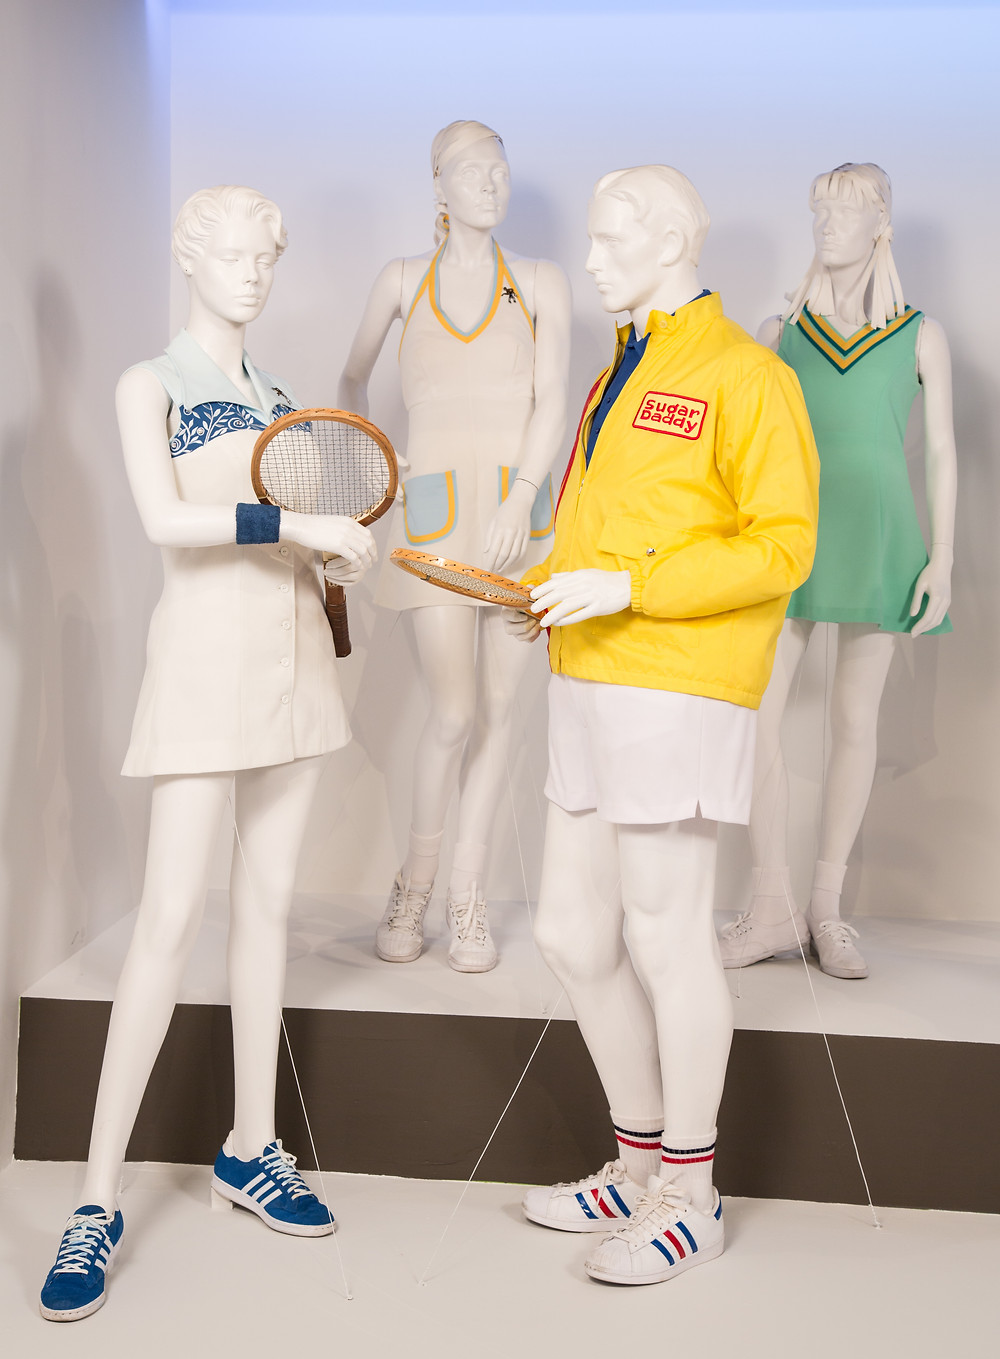 """Battle of the Sexes"" costumes by Mary Zophres. (L to R) Costumes worn by actors: Emma Stone as Billie Jean King, Lauren Kline as Nancy Richey, Steve Carrell as Bobby Riggs, Martha MacIssac as Jane 'Peaches' Bartkowicz."